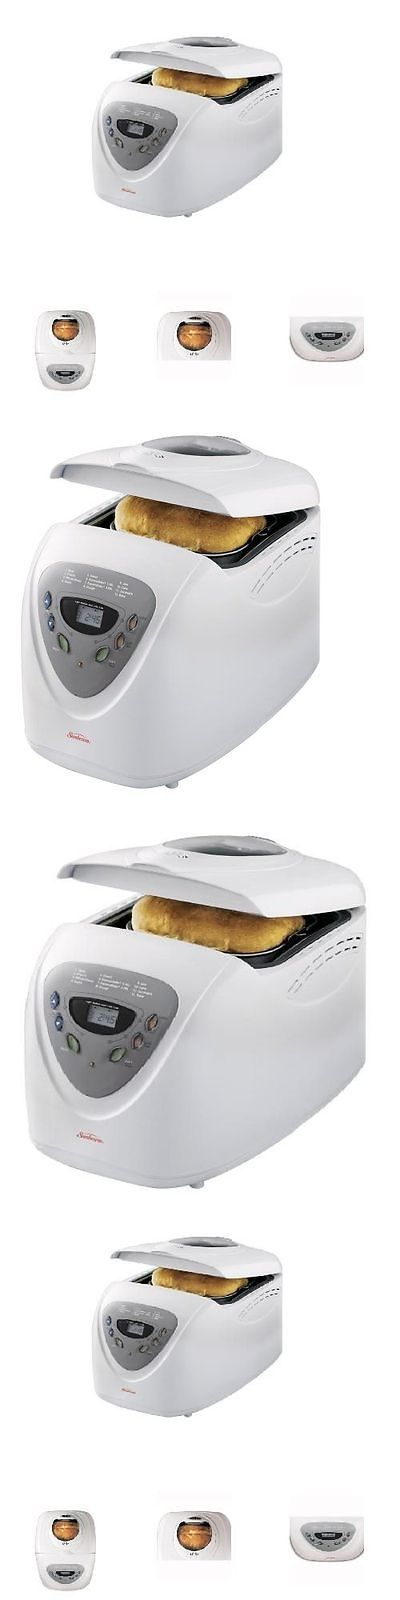 Bread Machines 20669: Programmable Breadmaker Delay Bake Home Bakery Automatic Bread Maker Machine New -> BUY IT NOW ONLY: $74.34 on eBay!